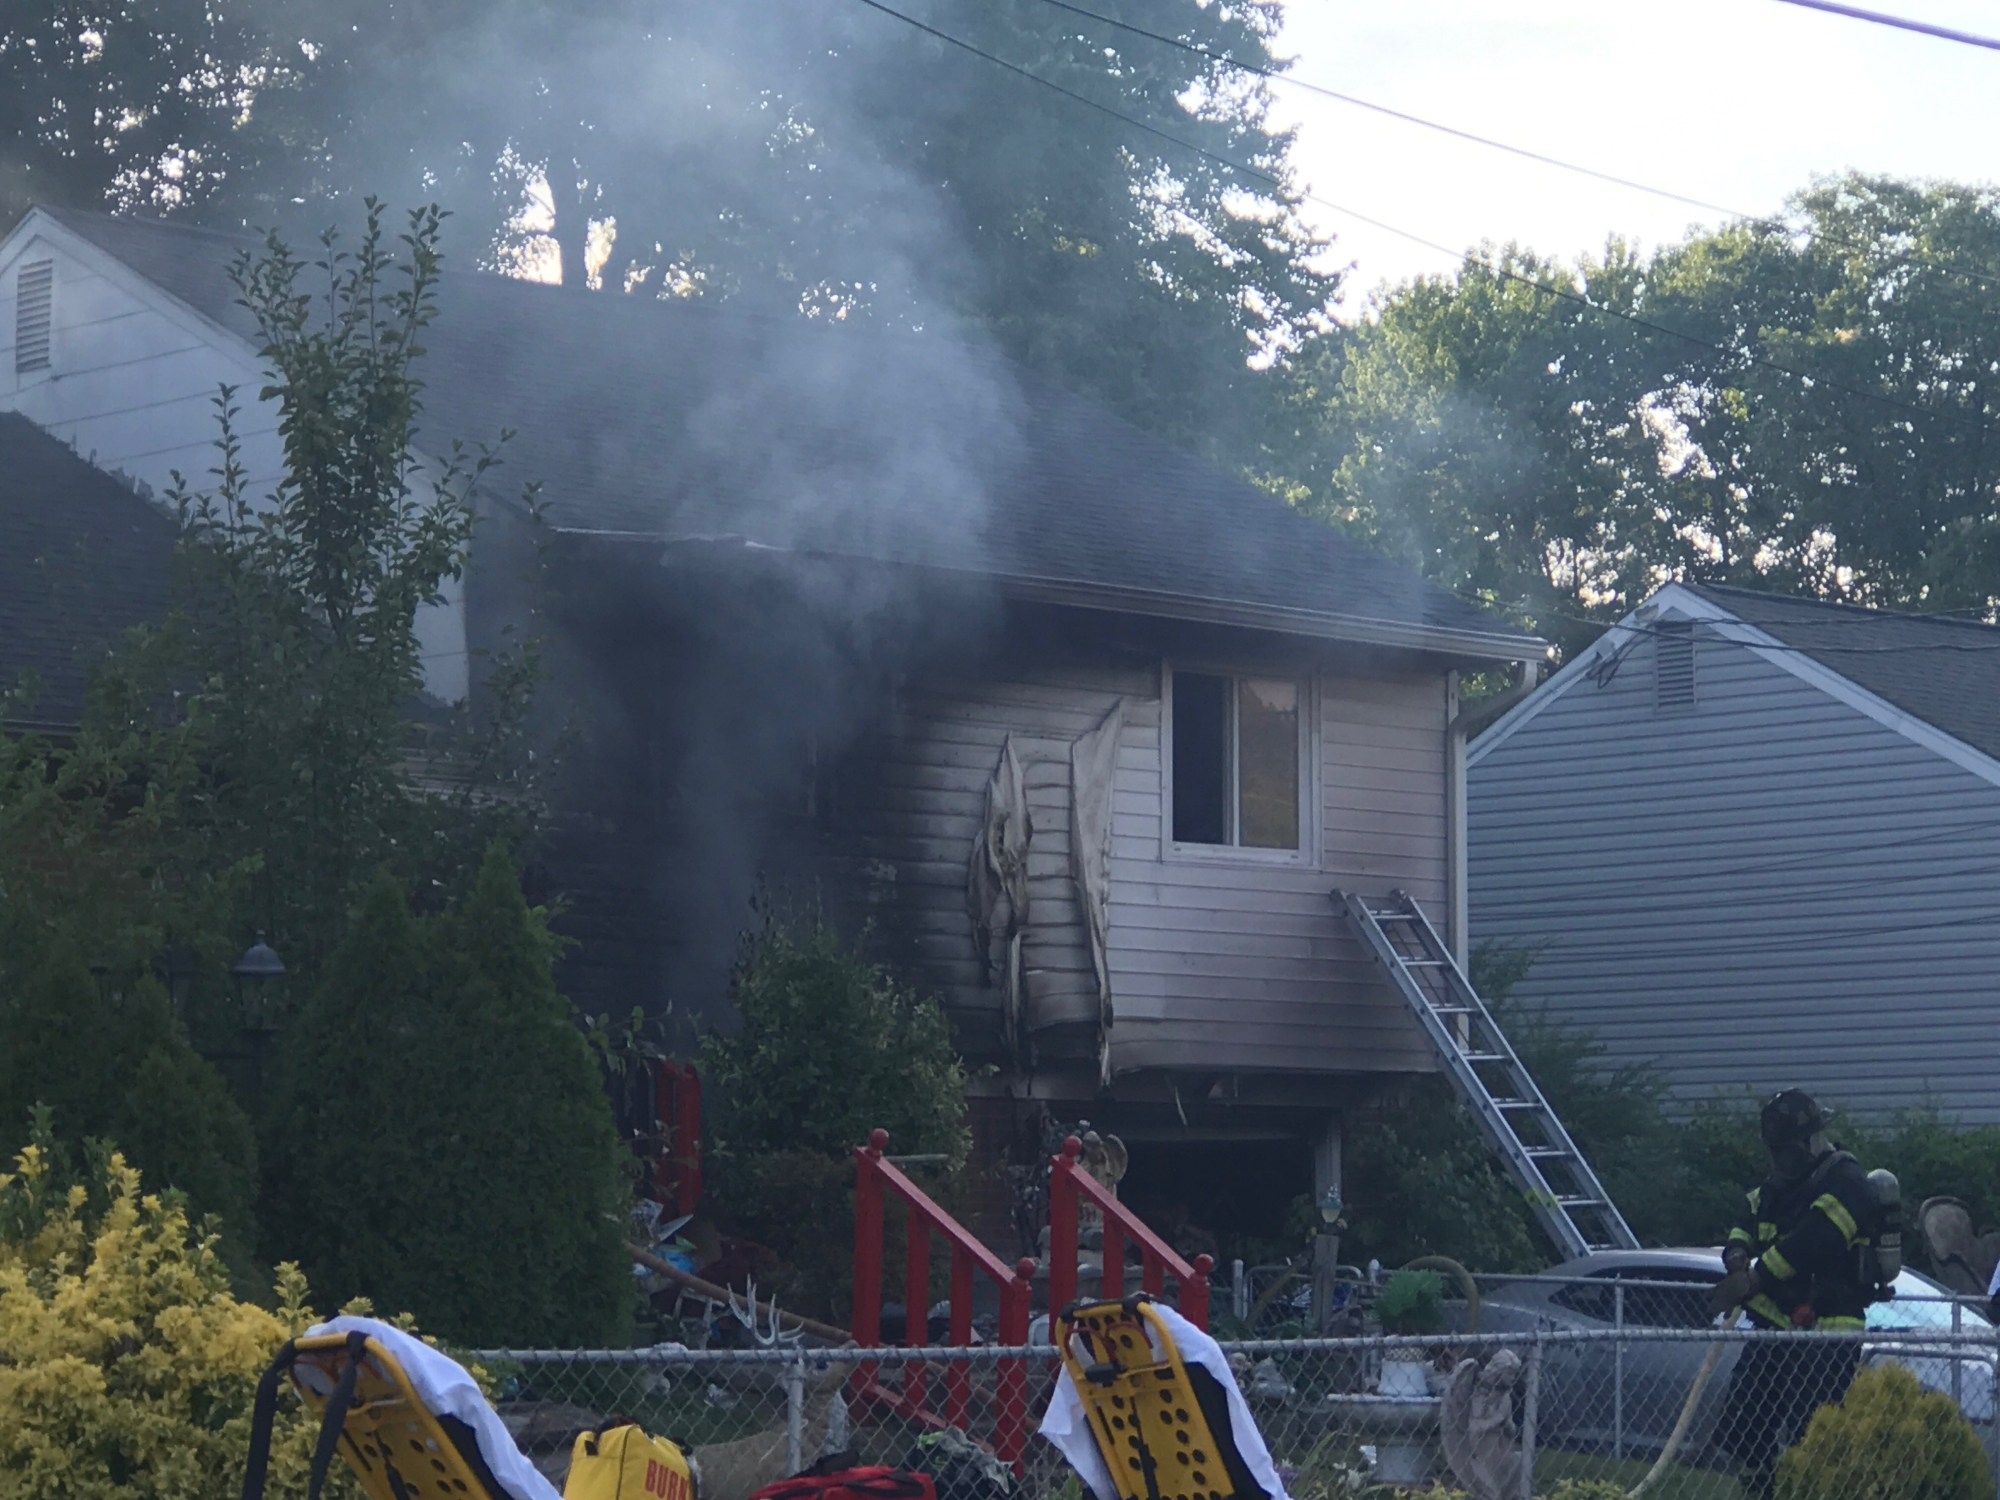 Yorkshire Terrace: Crews From Hampton And Newport News Respond To House Fire